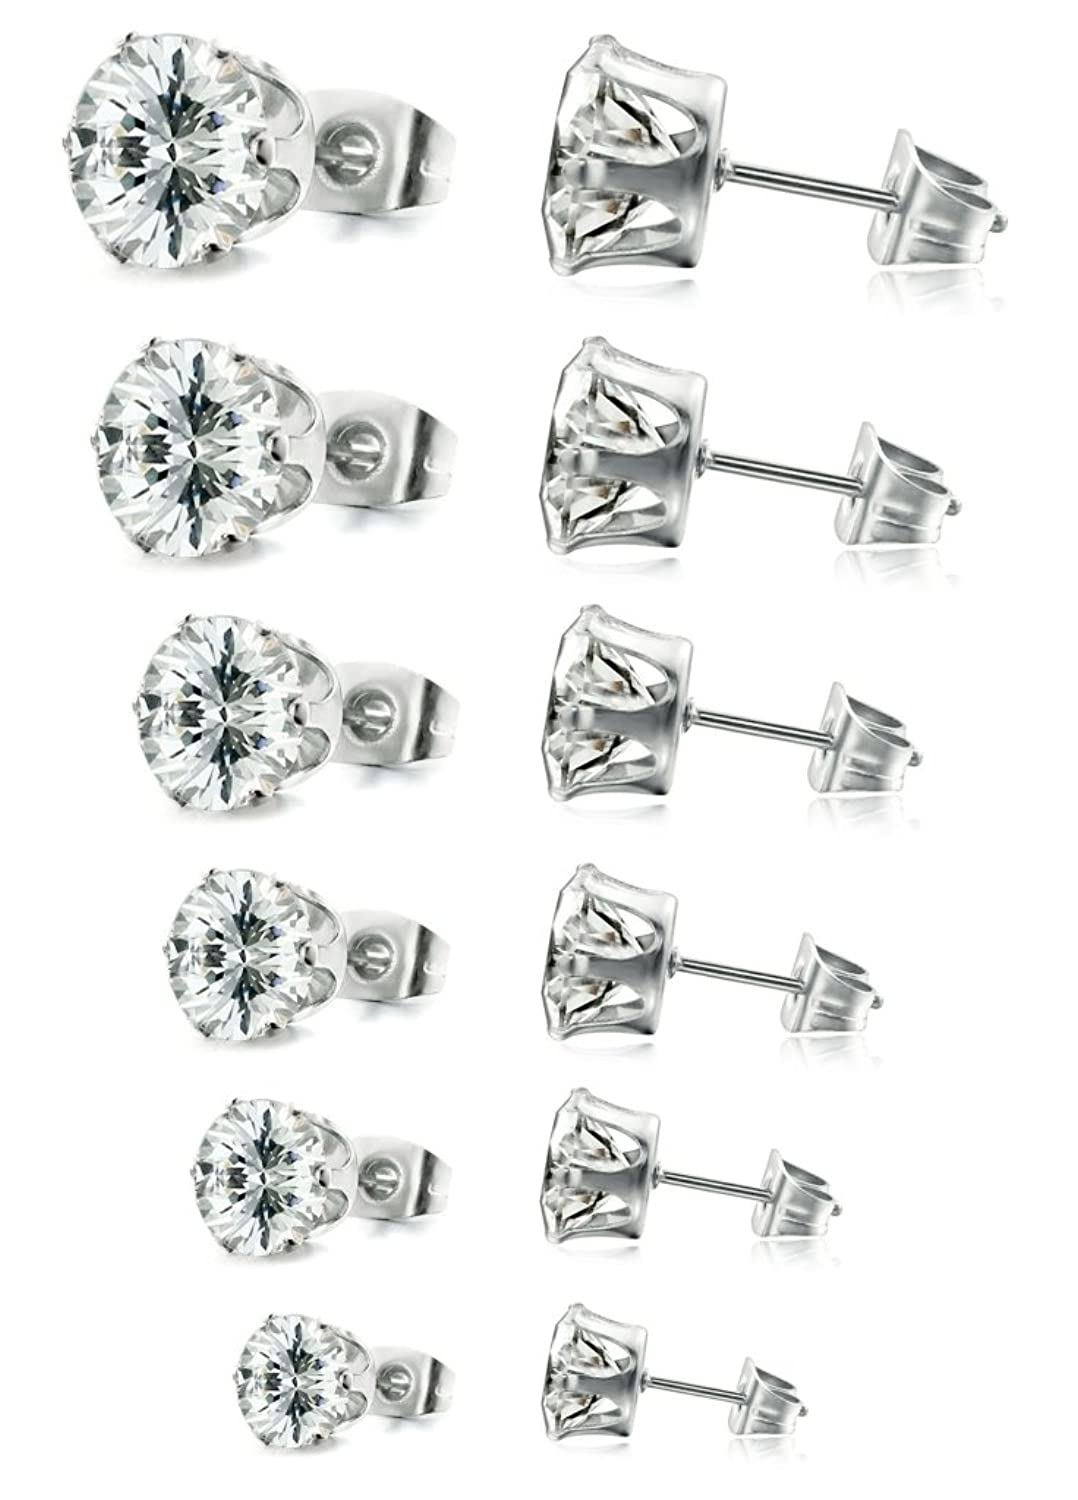 FIBO STEEL Stainless Steel Womens Stud Earrings Cubic Zirconia Inlaid,3mm-8mm 6 Pairs